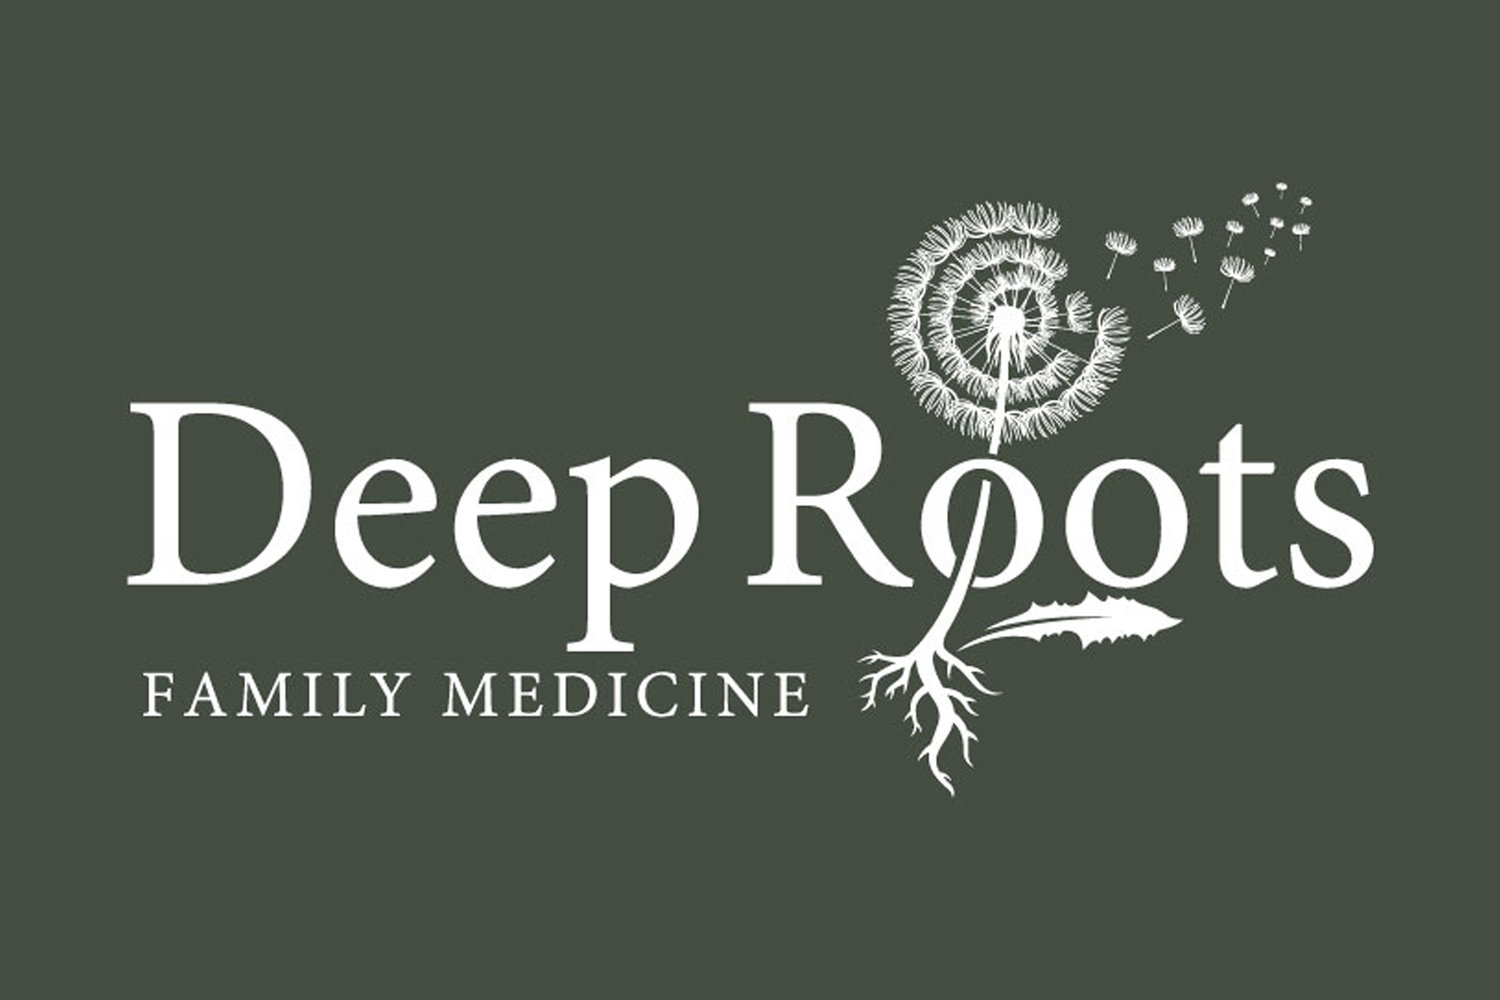 Deep Roots Family Medicine